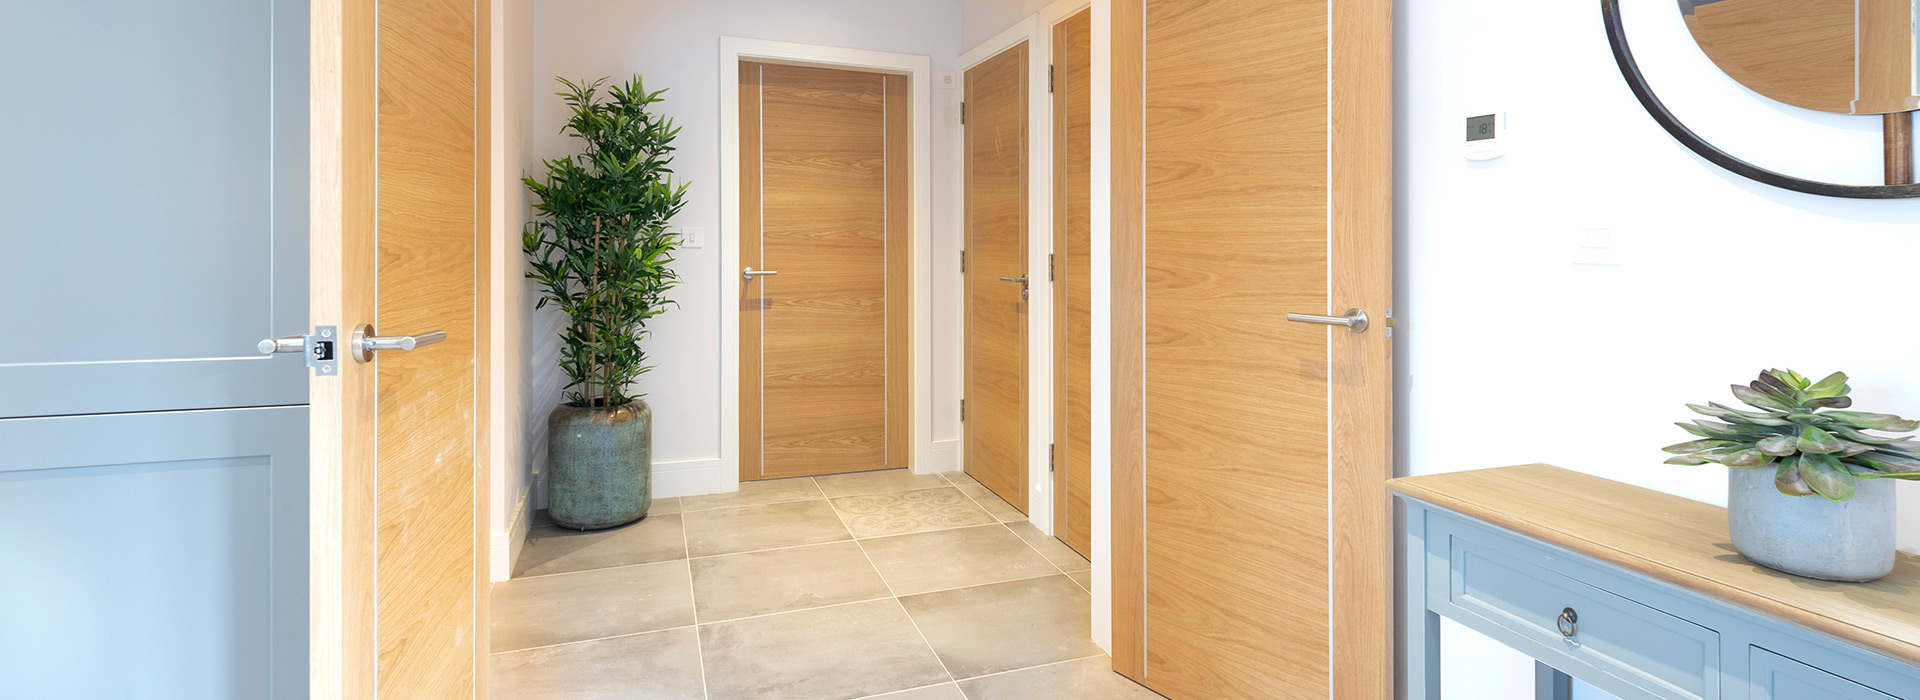 American white oak doors on hallway